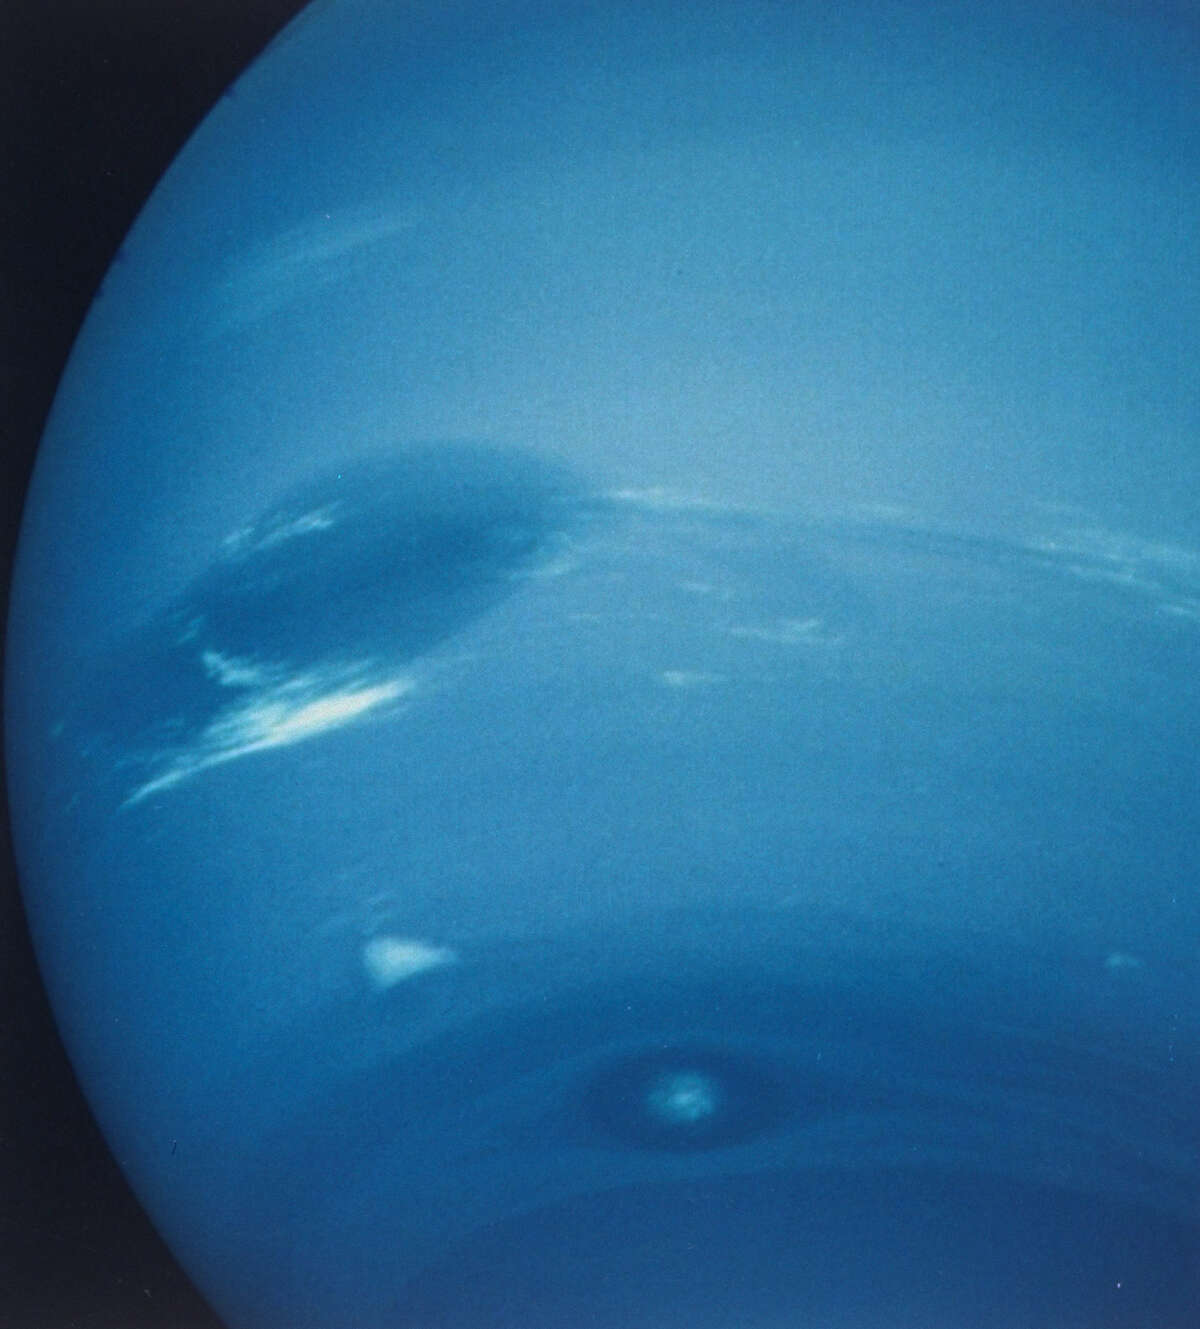 Neptune taken w. narrow-angle camera showing the Great Dark Spot w. cloud named Scooter beneath it, from spaceship Voyager II.